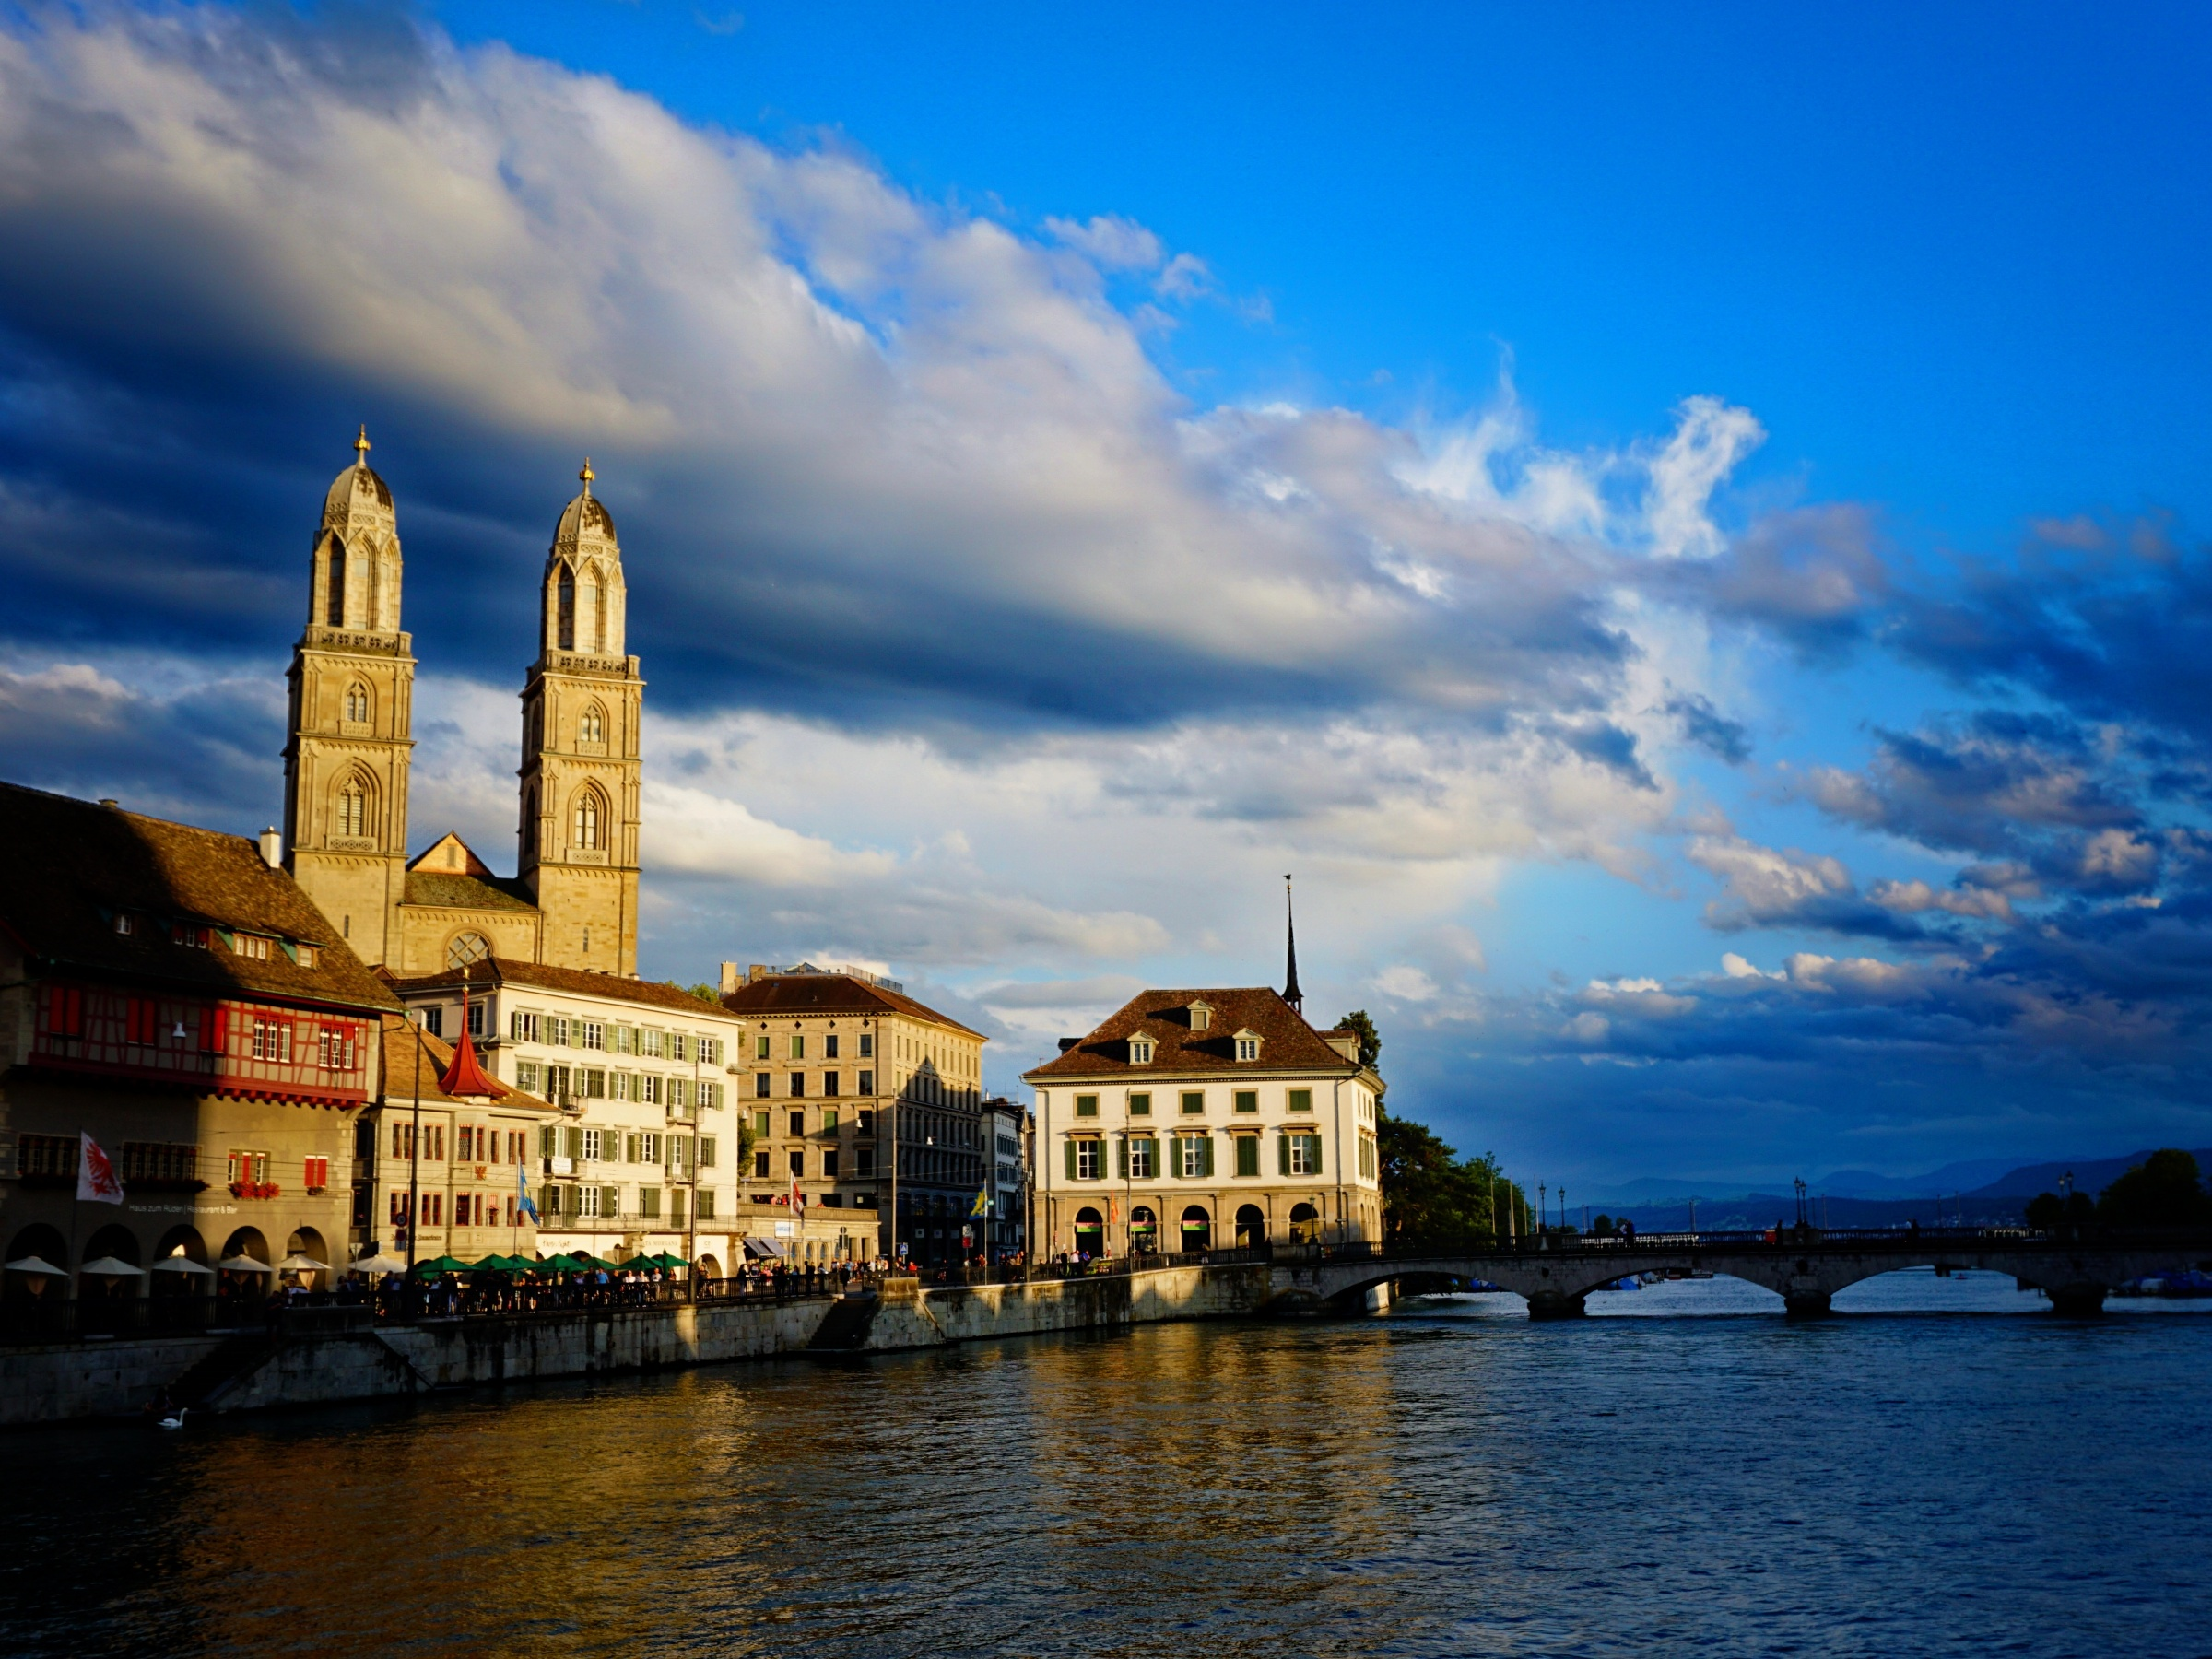 The Grossmünster in Zurich by the Limmat river before sunset.